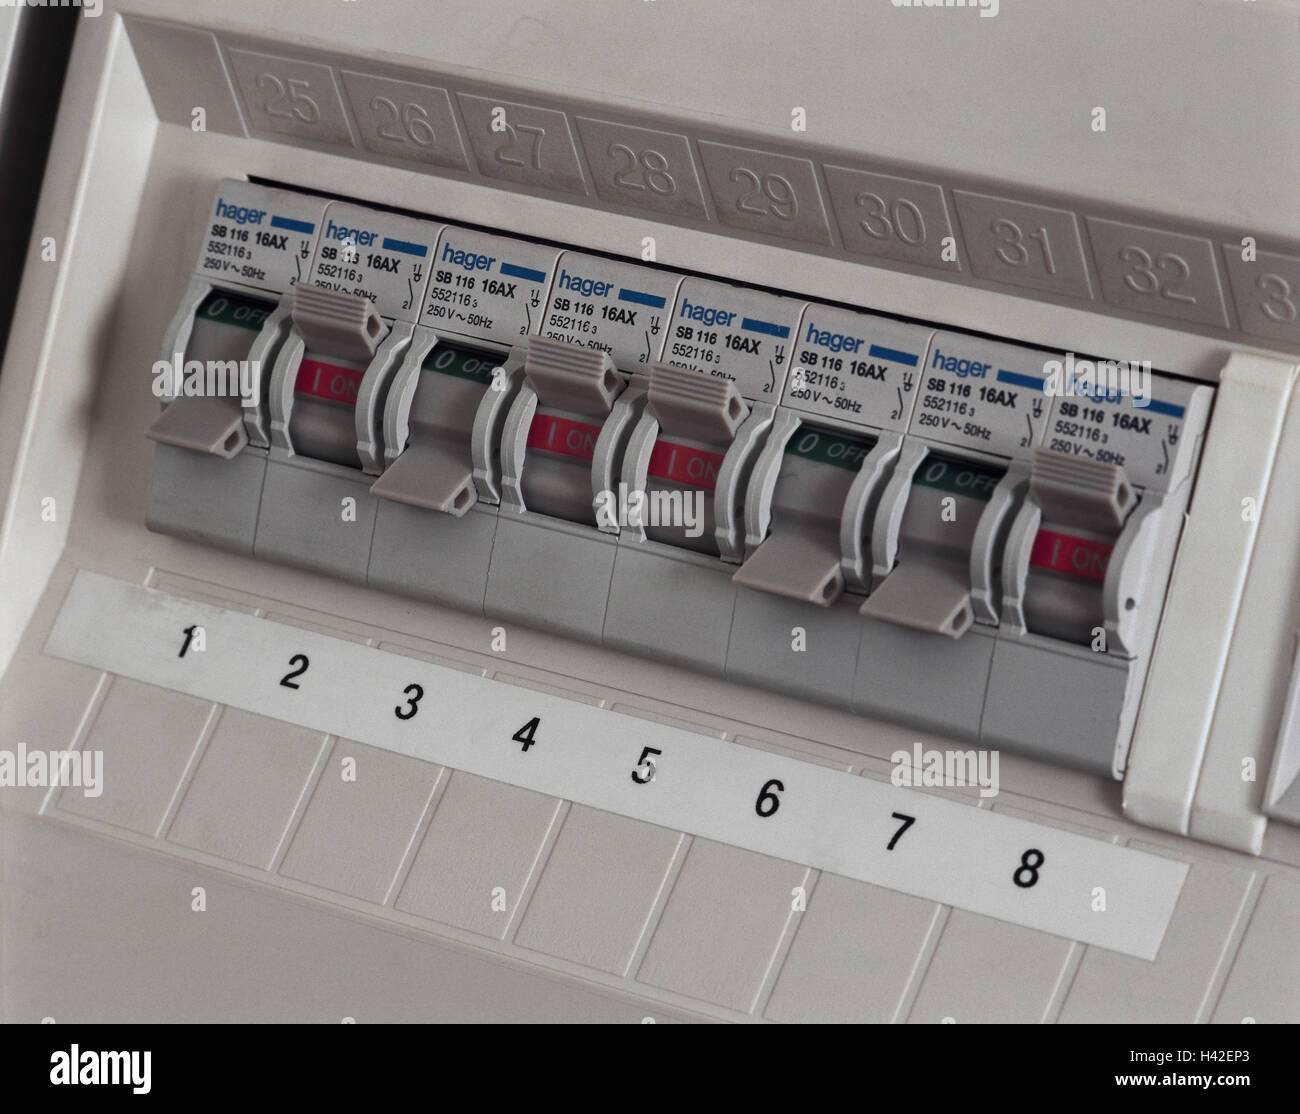 hight resolution of fuse box toggle detail on out vision current backups electricity electricity supply switch one from product photography